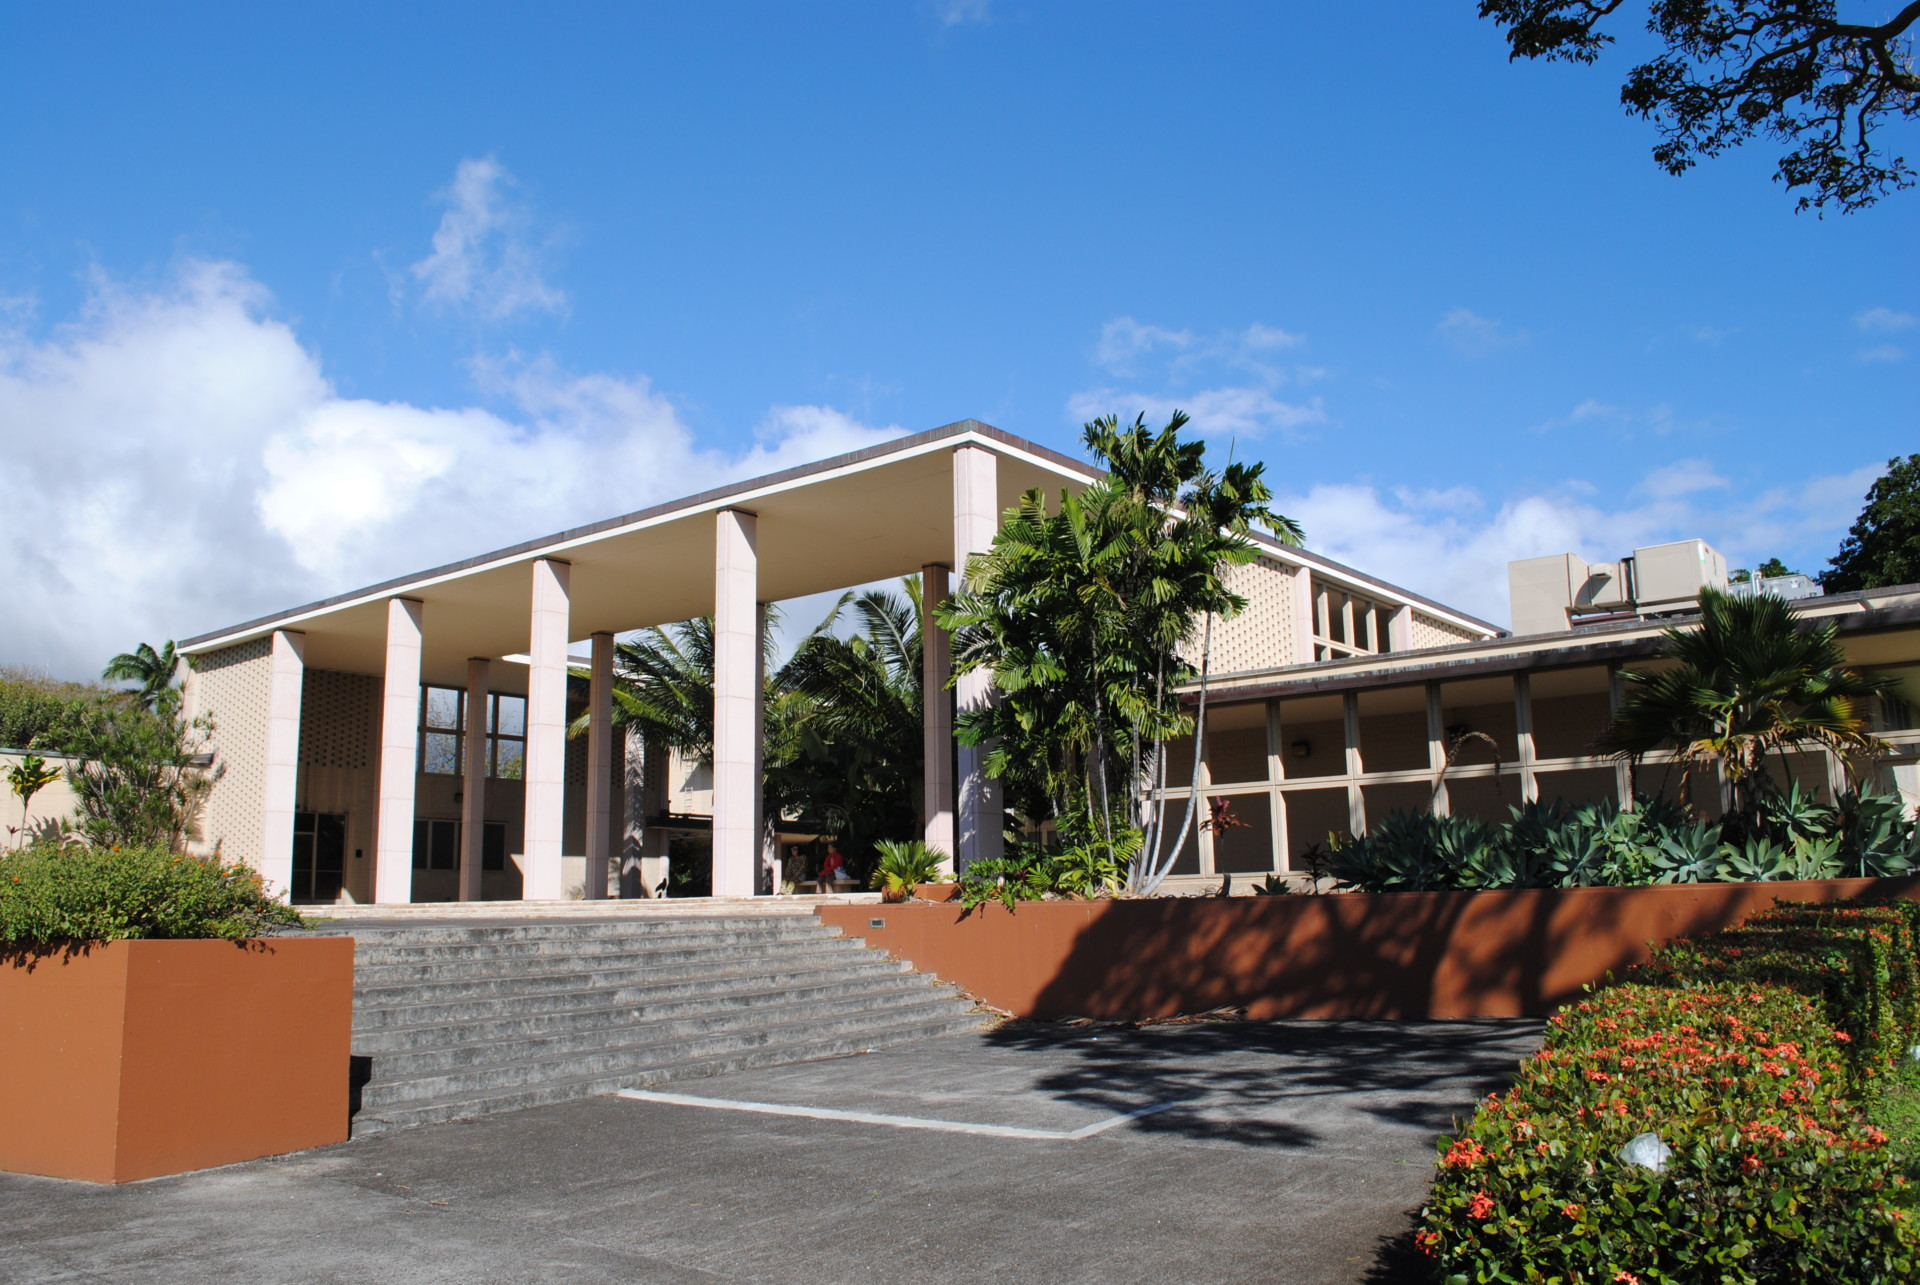 university business magaz hawaii - HD 3872×2592